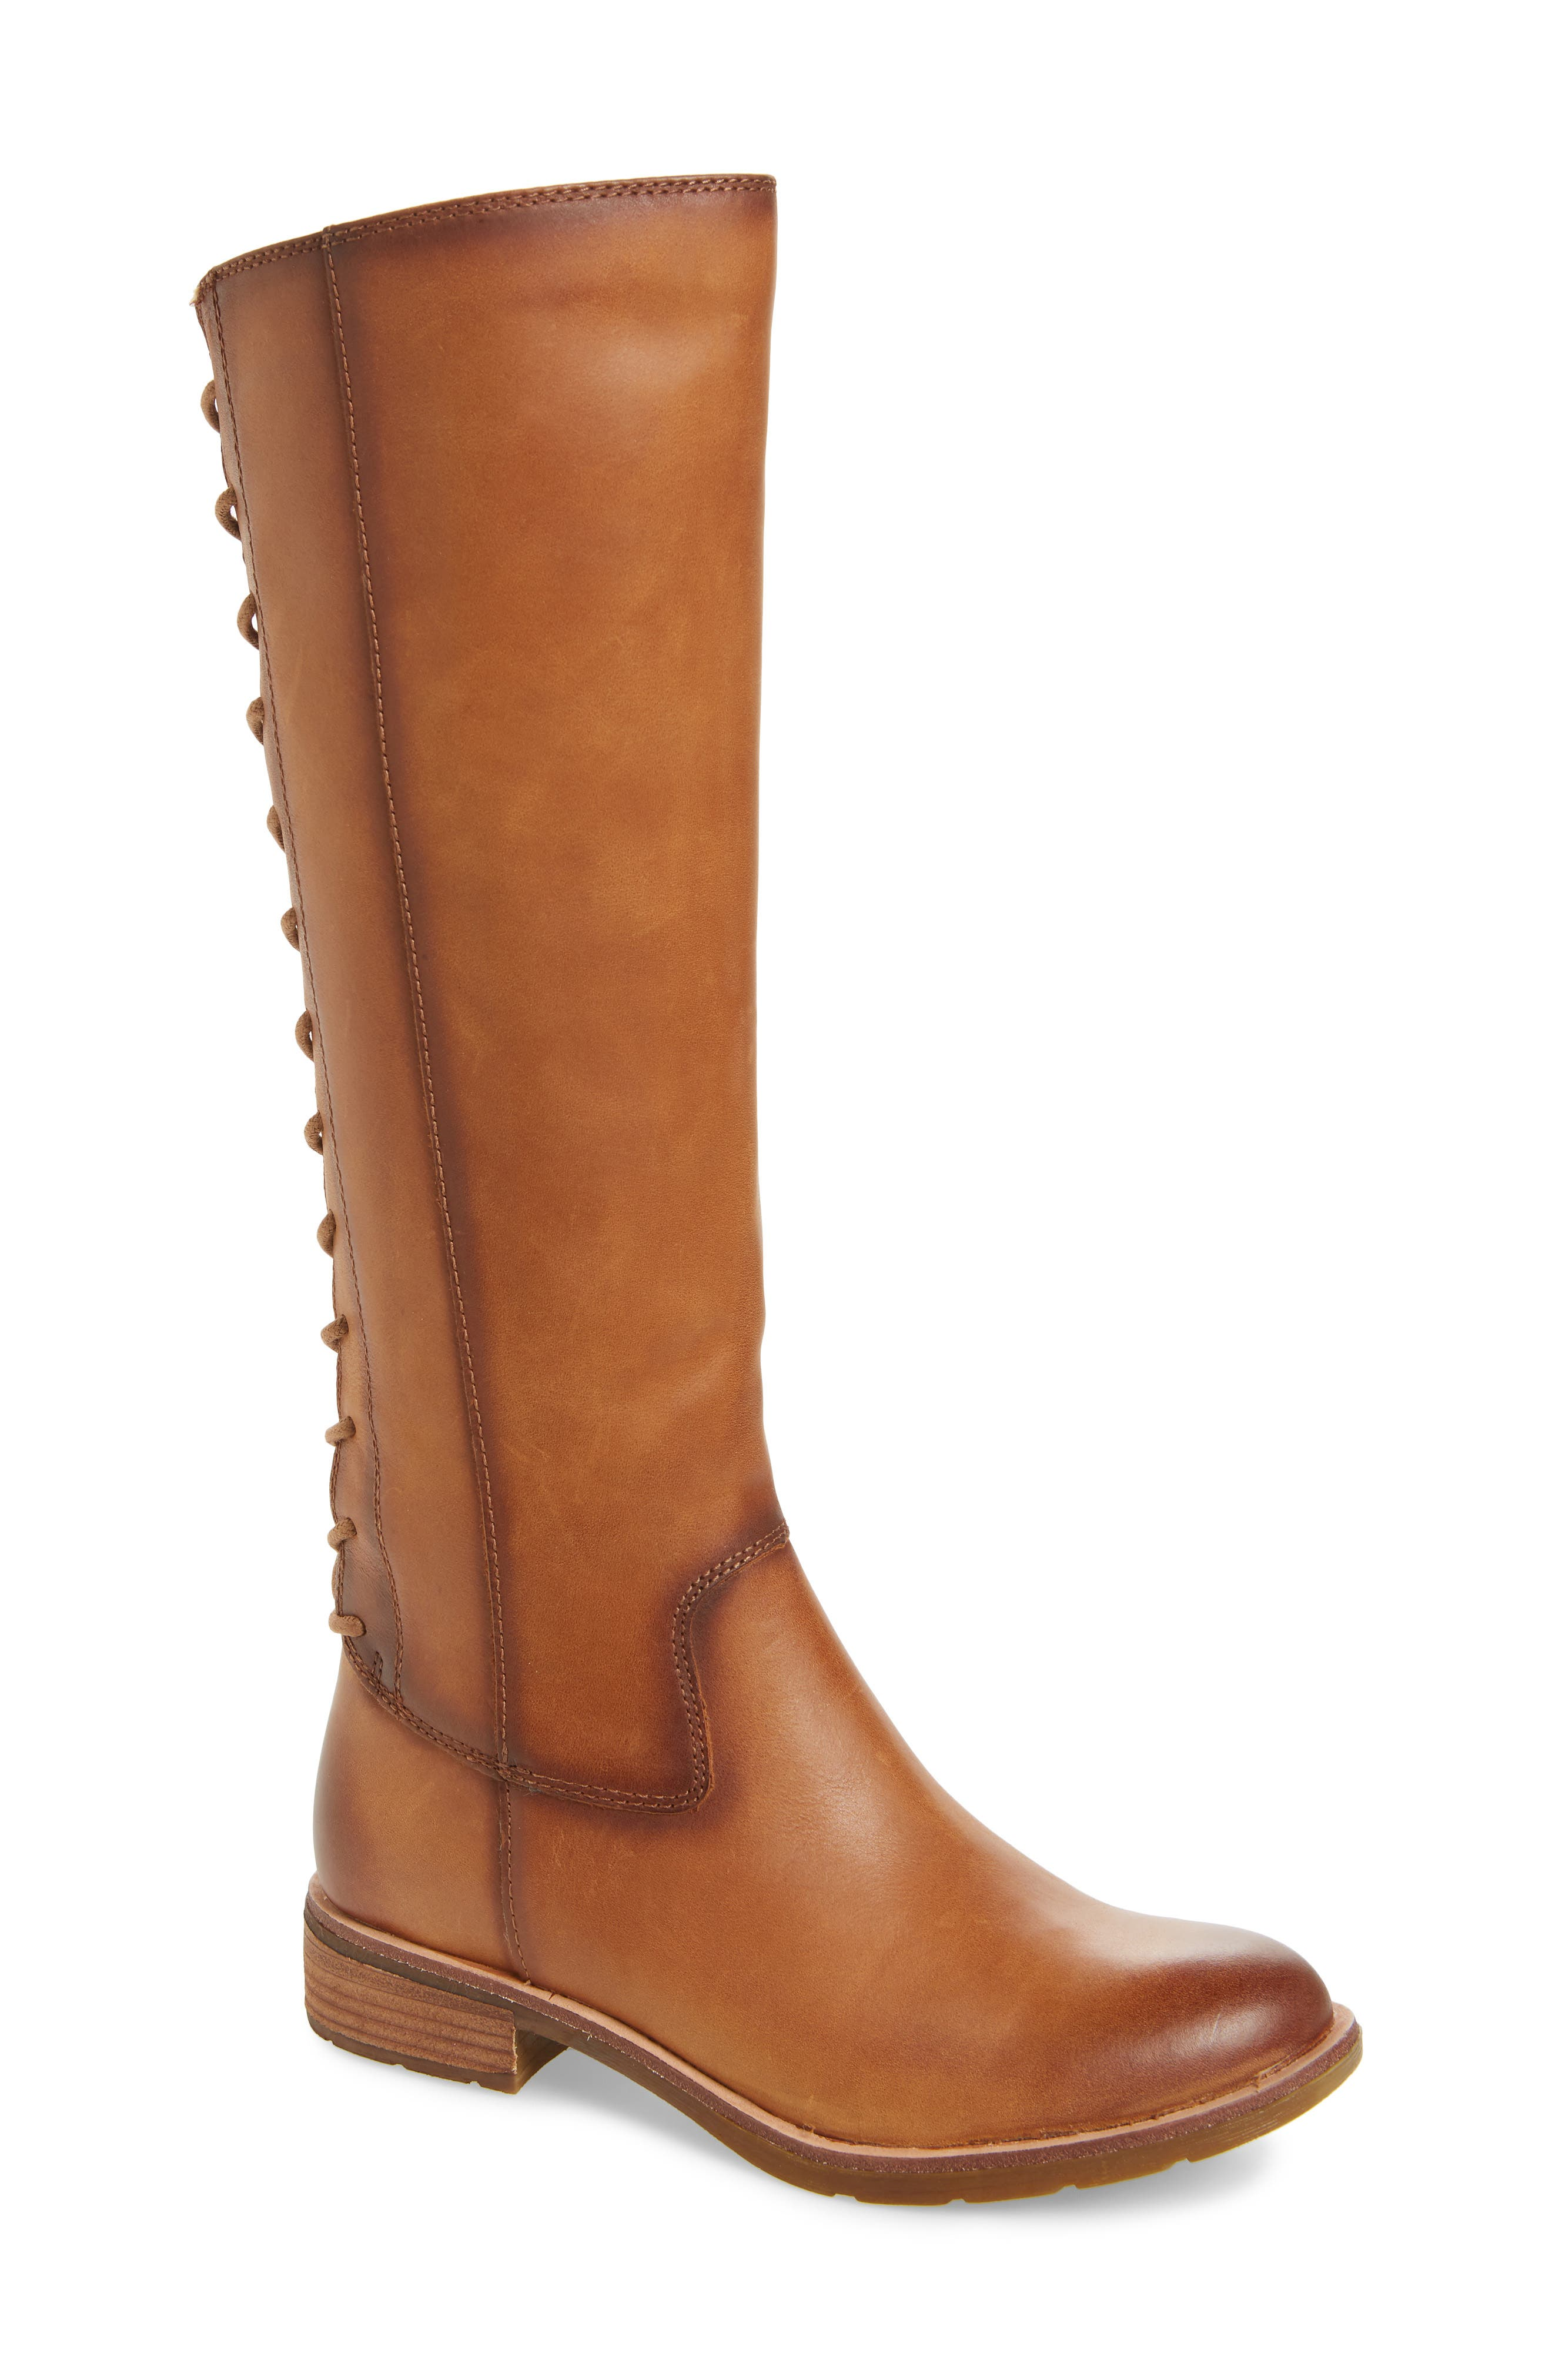 Sharnell II Knee High Boot,                             Main thumbnail 1, color,                             BISCUIT LEATHER